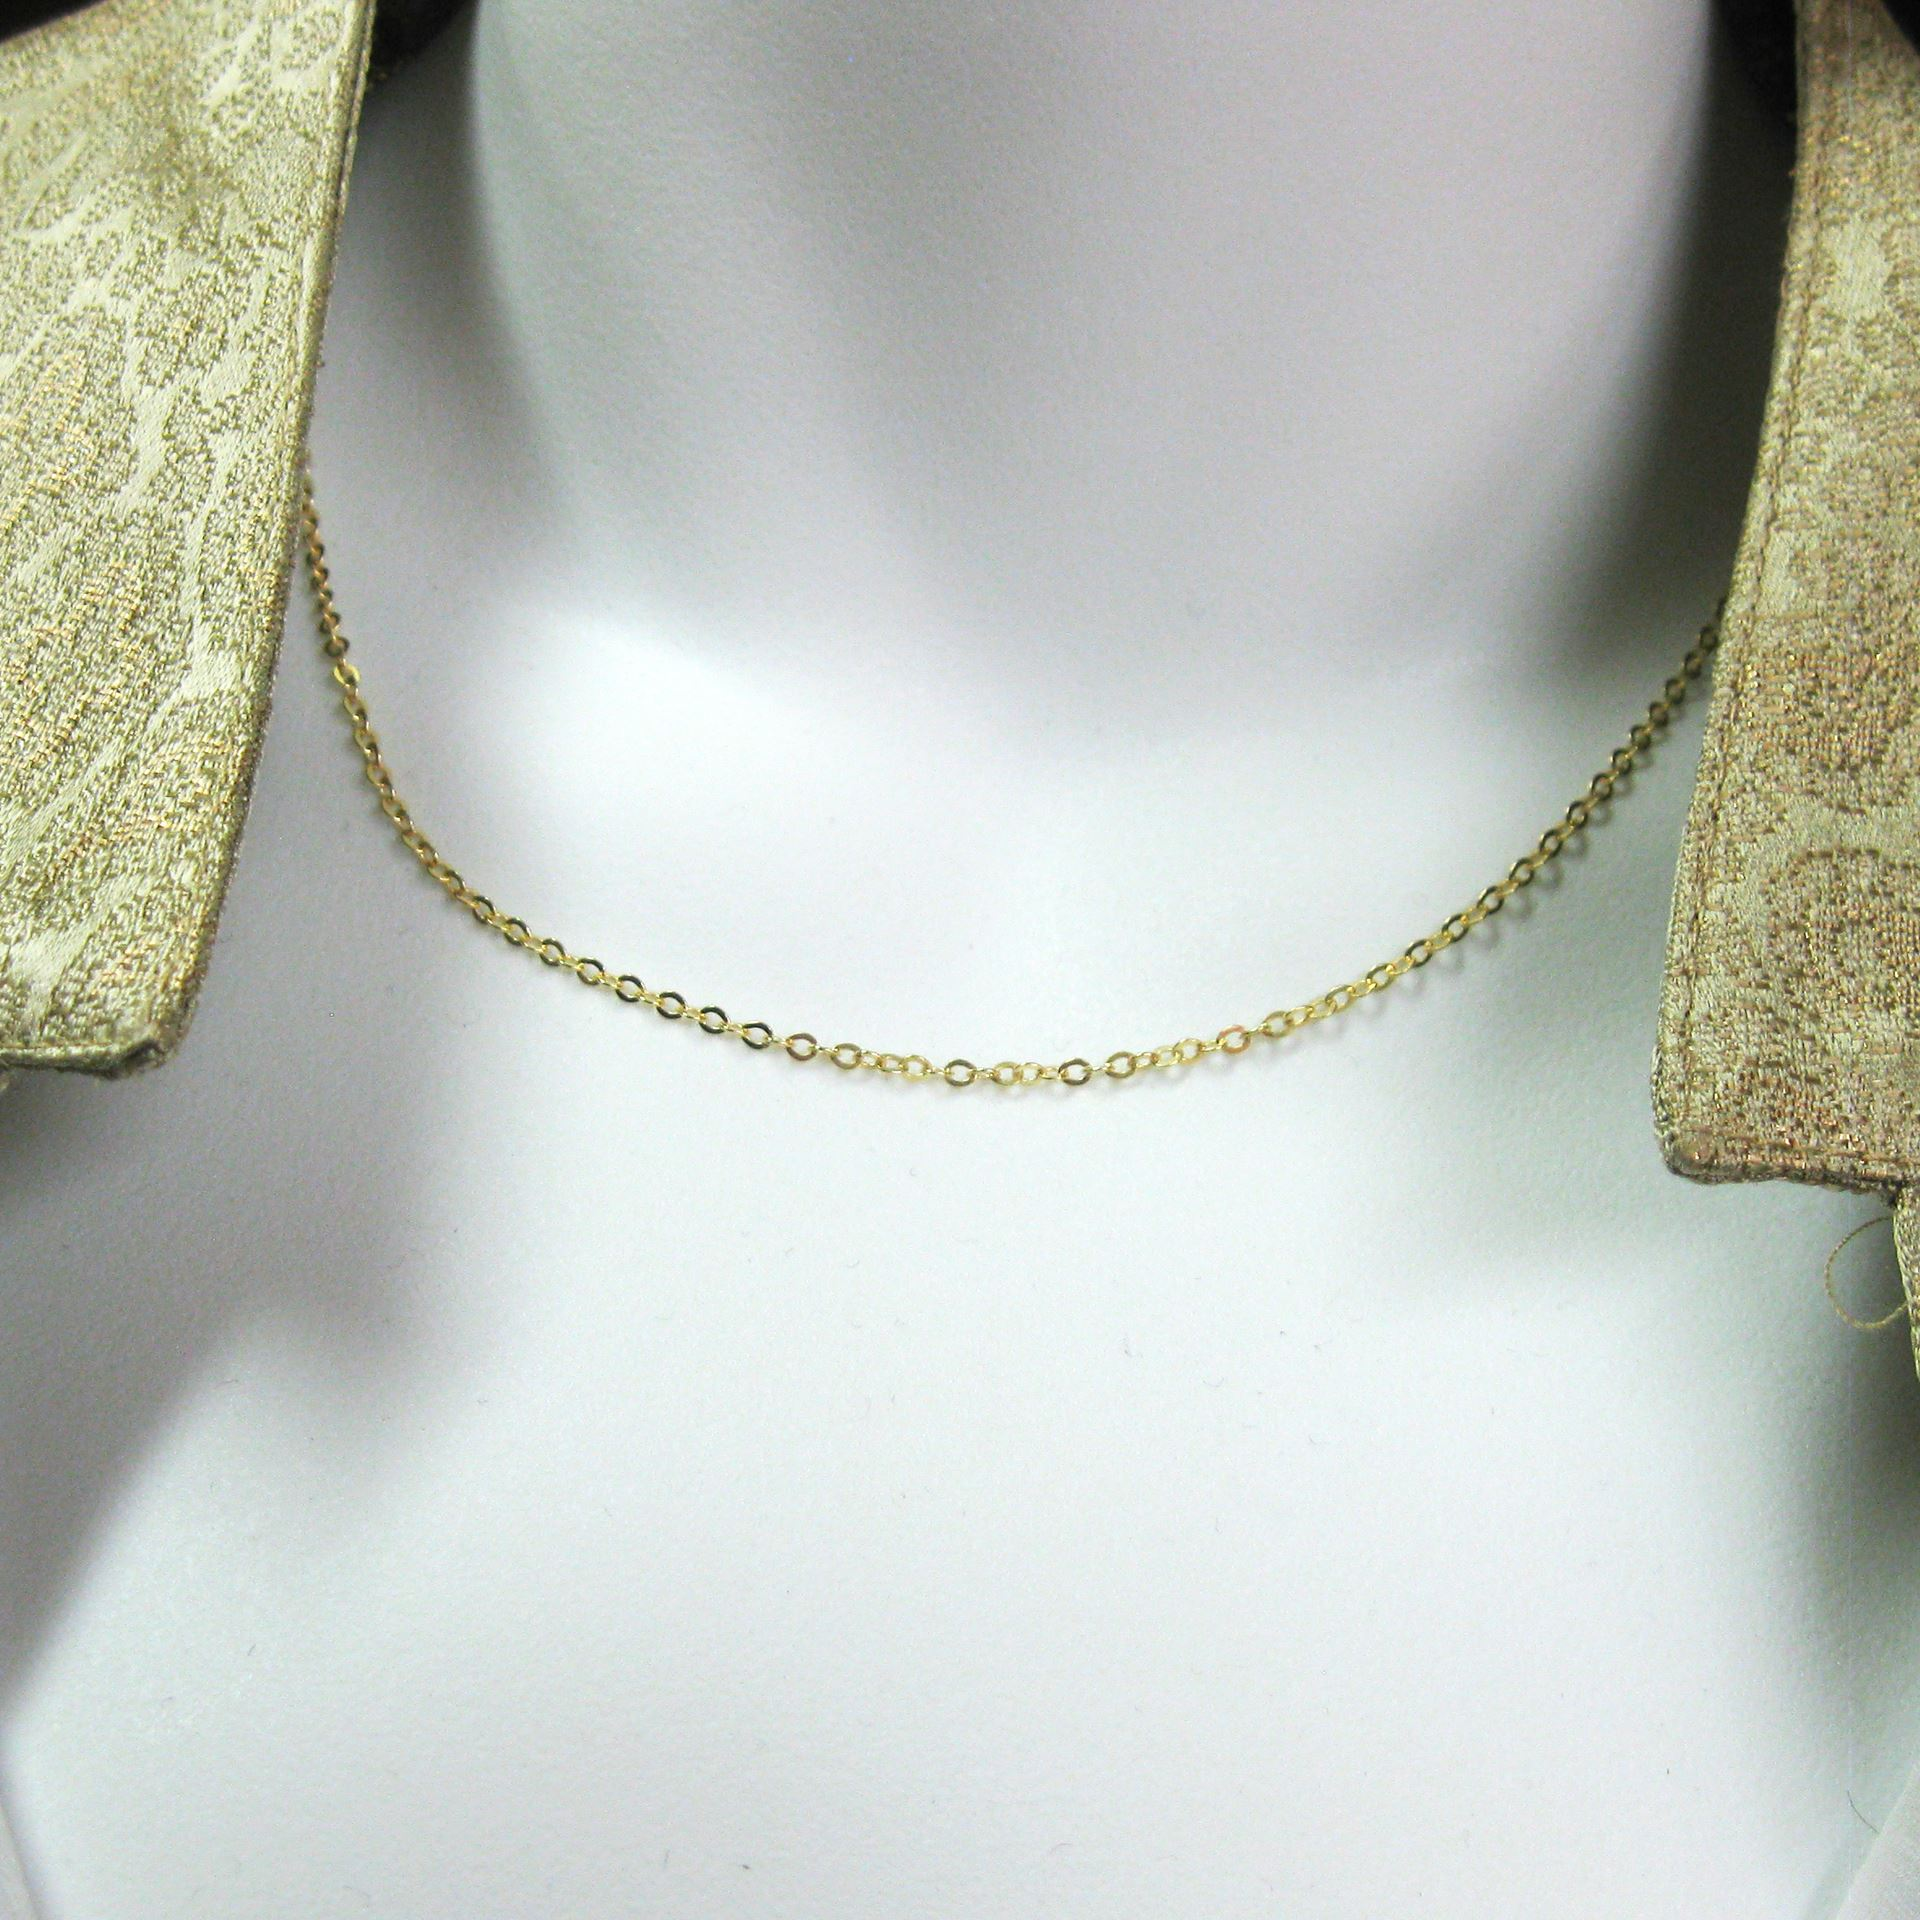 22K Gold plated Sterling Silver Necklace Chain - Bracelet Chain - Anklet Chain - 2.3mm Strong Flat Cable -All Sizes